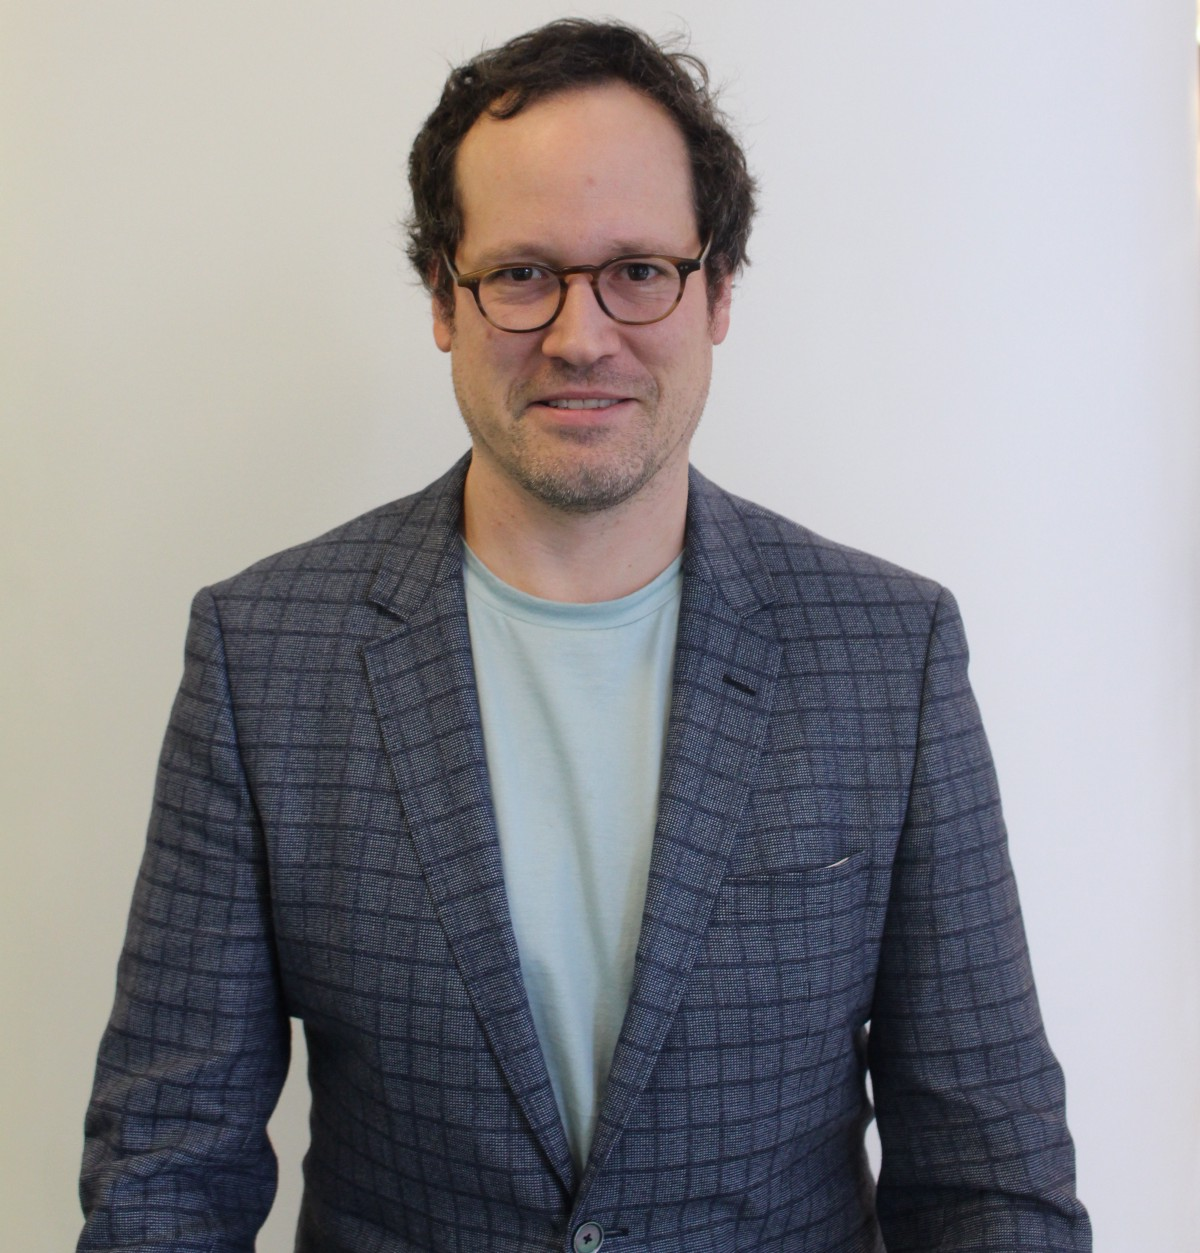 Bradford Cross on Fintech automation, bot overload, and how to build an AI startup